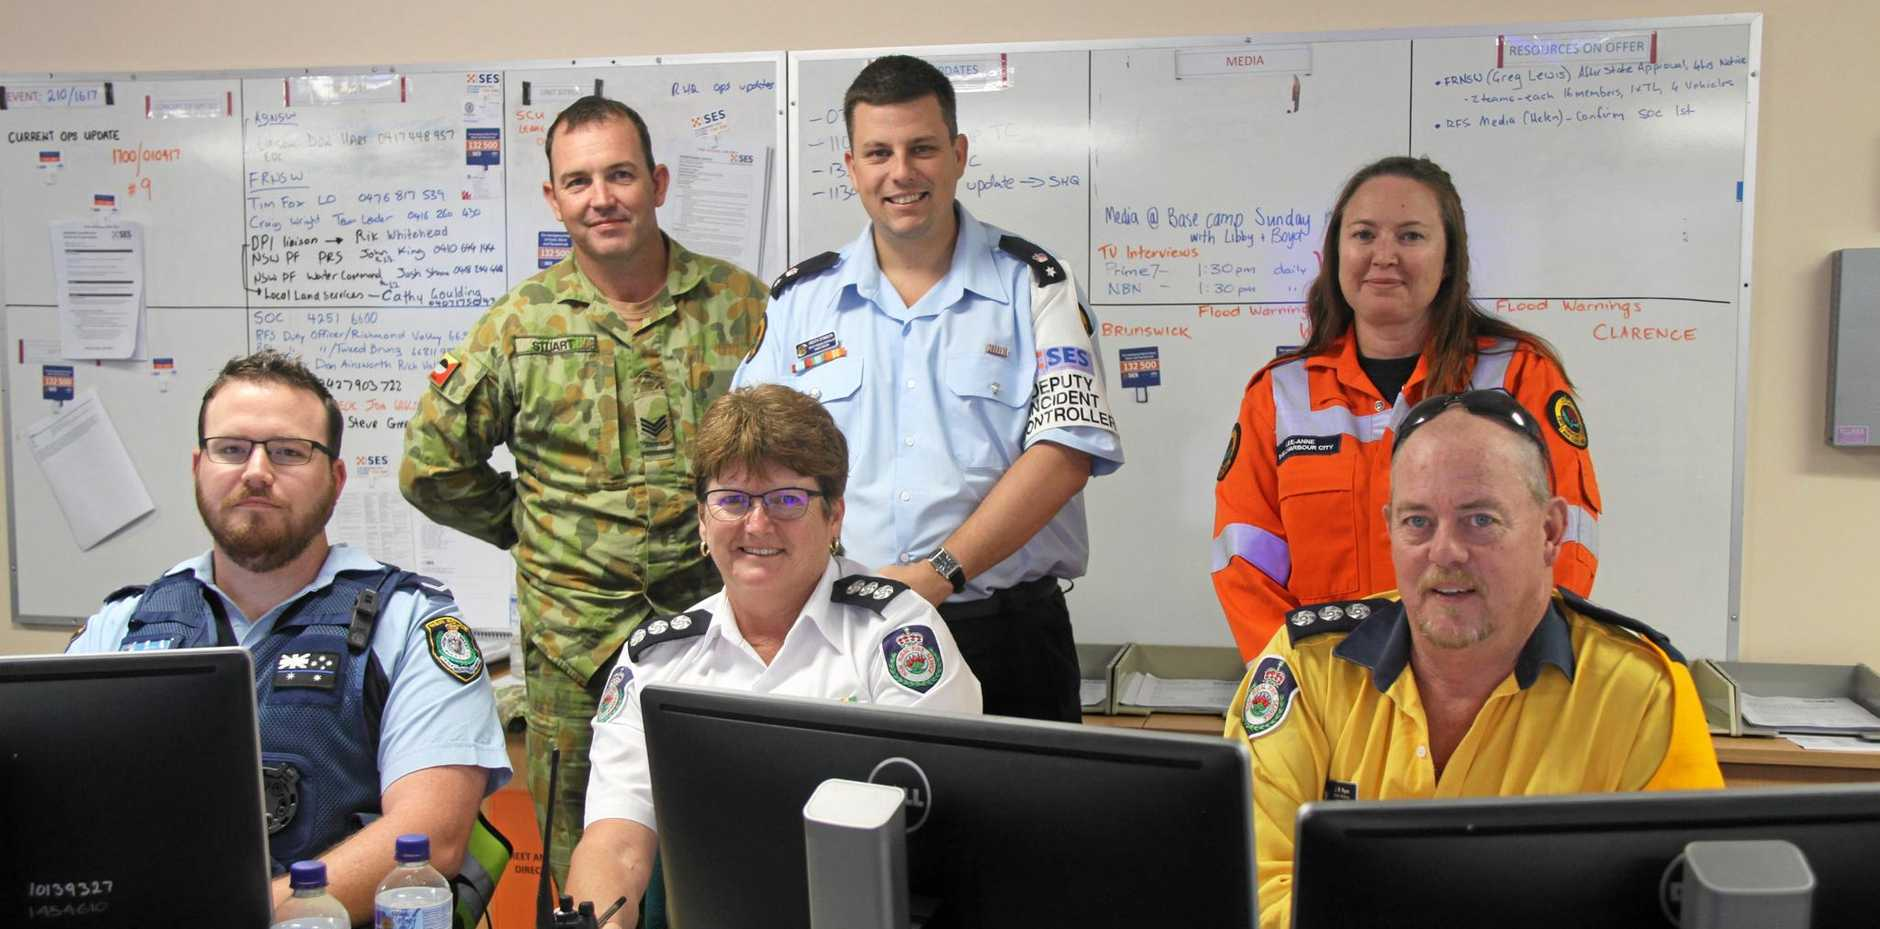 Representatives of the many agencies working to restore Lismore and surrounds to normalcy include the night-shift crew at the SES HQ, include Jarrod Wed (Police) Sgt St Stuart (Army) Heath Stimson (SES), Liz Ferris (RFS) Lee-Anne Stanford (SES) and John Ryan (RFS).